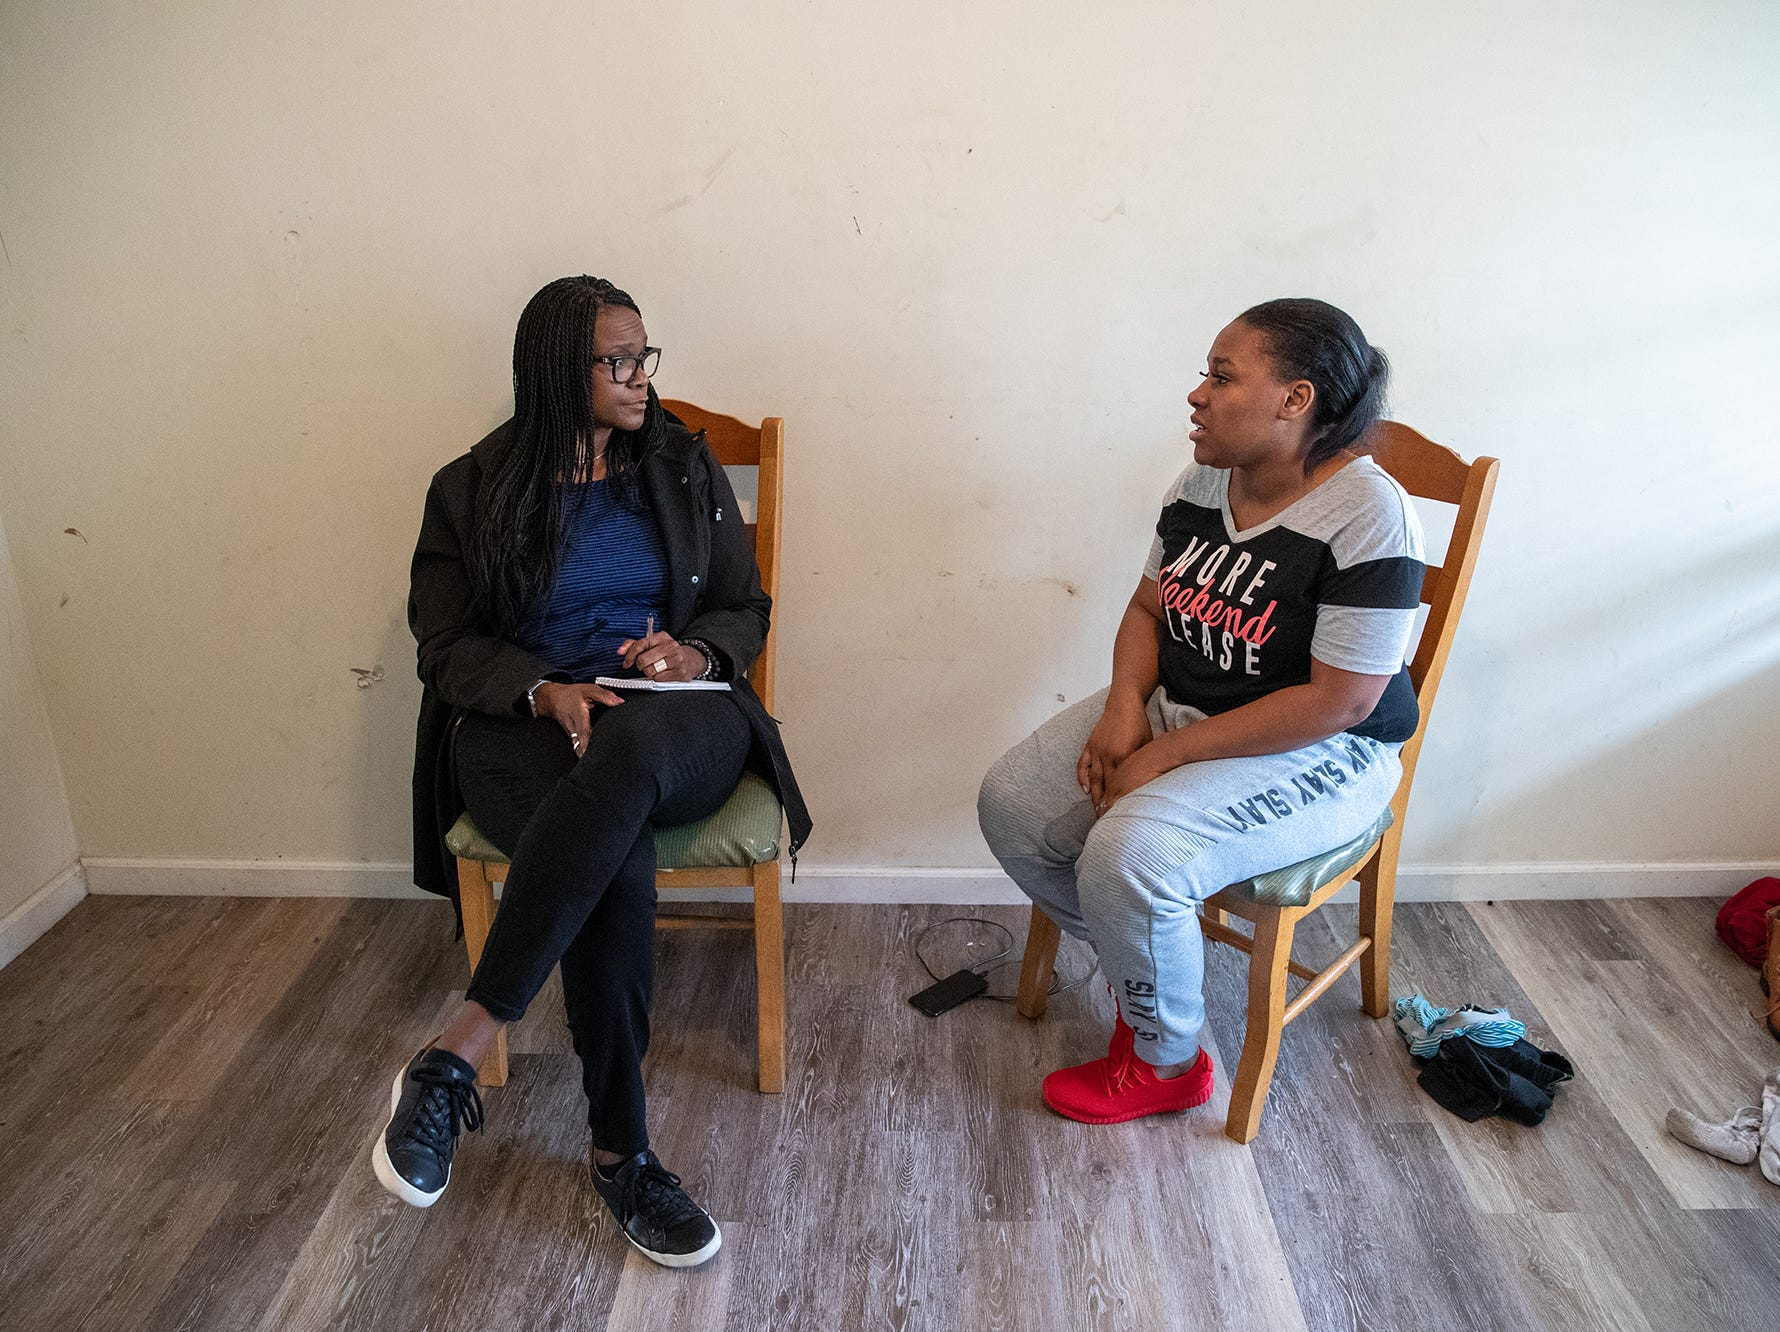 """Suzette Hackney (left), IndyStar director of opinion and community engagement, sits with Latasha Sanders on Wednesday, April 10, 2019. """"Obviously in January you were down and desperate for help,"""" said Hackney. """"So walk me through, why you are where you are now."""" Sanders says that her life is turning around. """"I believe that I am where I am now is because I stayed focus. There was a lot of times I woke up and didn't want to go to work but I was like, """"No, let me get up and go.'"""""""